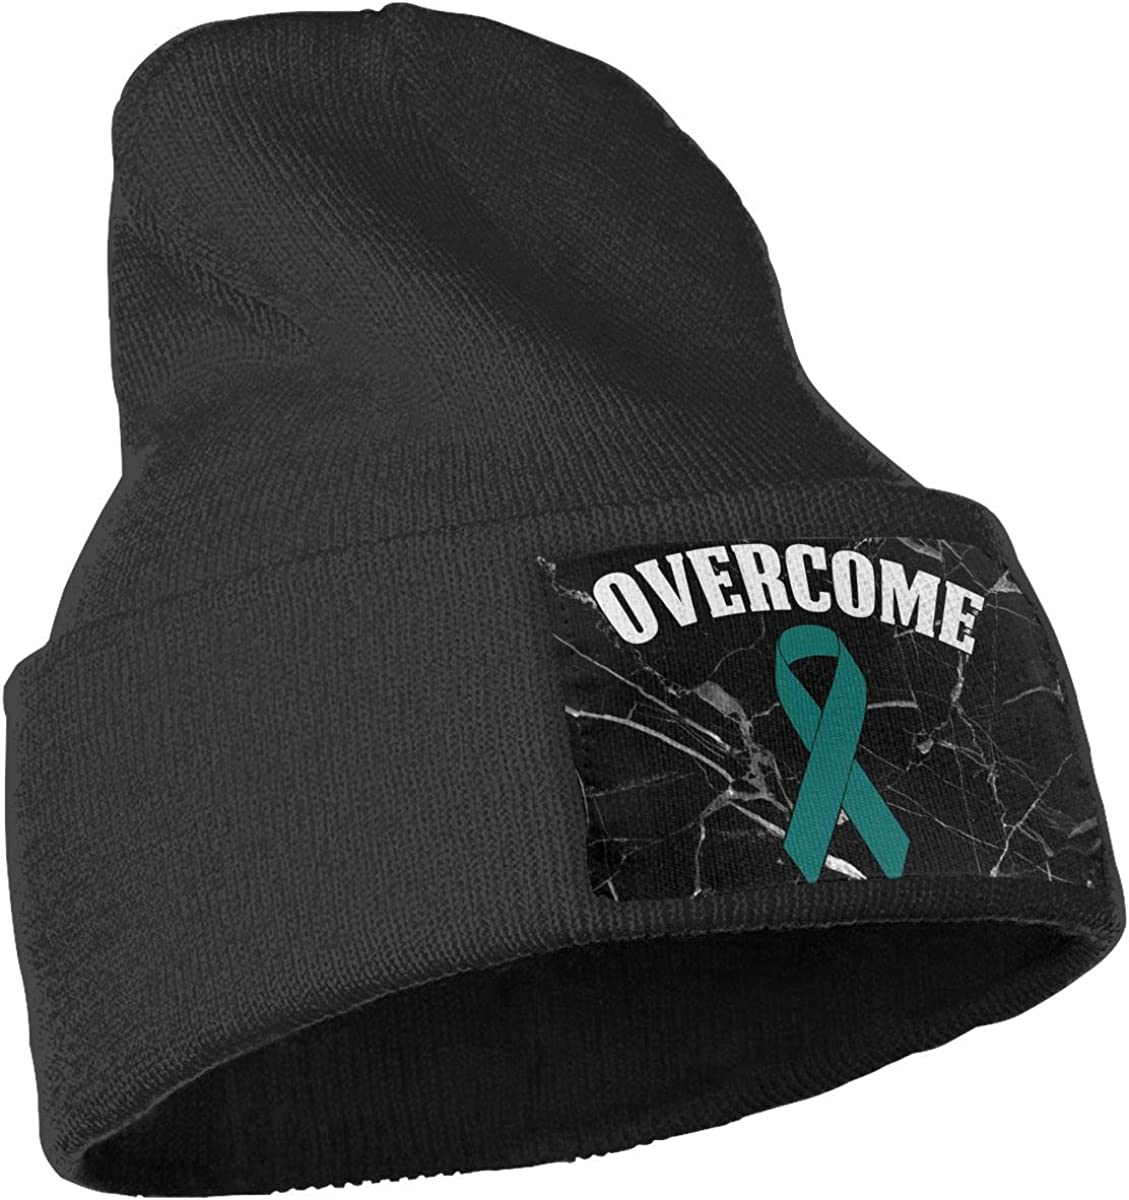 Overcome Ovarian Cancer Awareness Beanie Cap Hat Men Women Knitting Hats Stretchy /& Soft Beanie